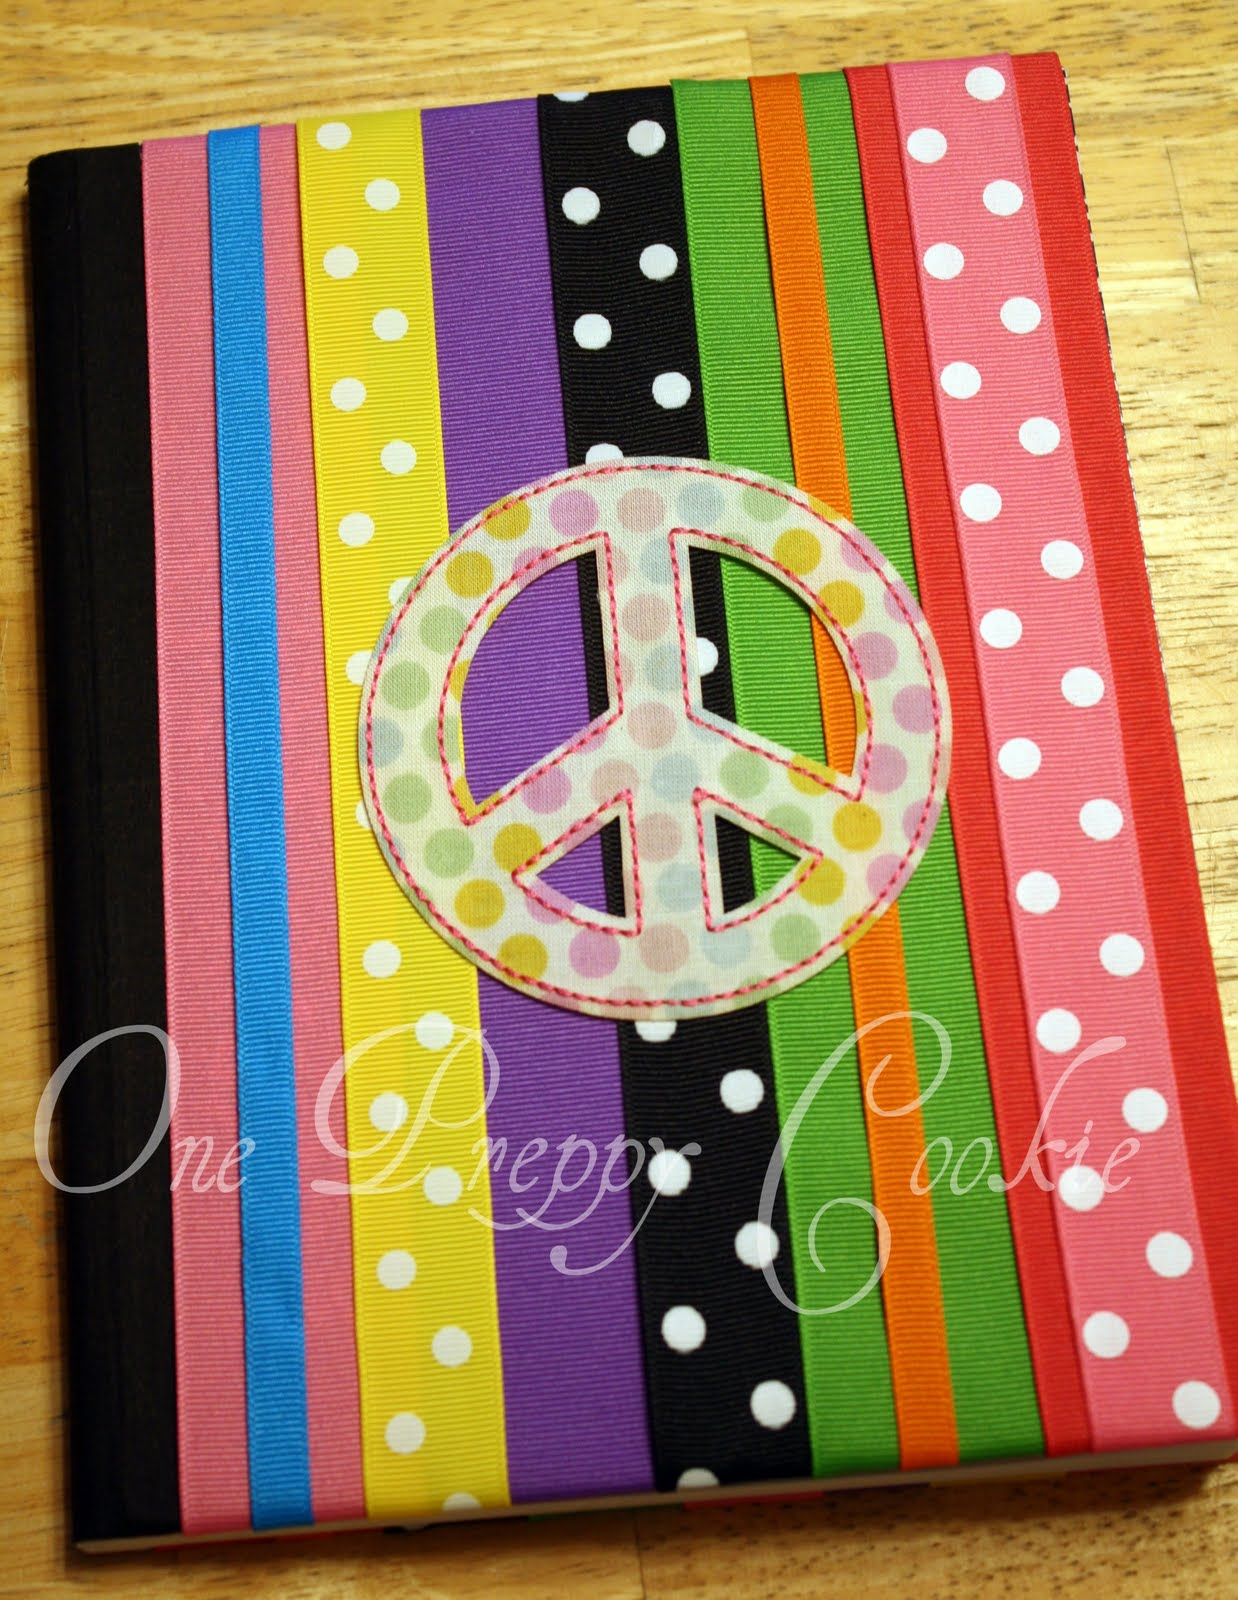 One preppy cookie tutorial back to school do it yourself one preppy cookie tutorial back to school do it yourself grosgrain ribbon notebooks solutioingenieria Image collections